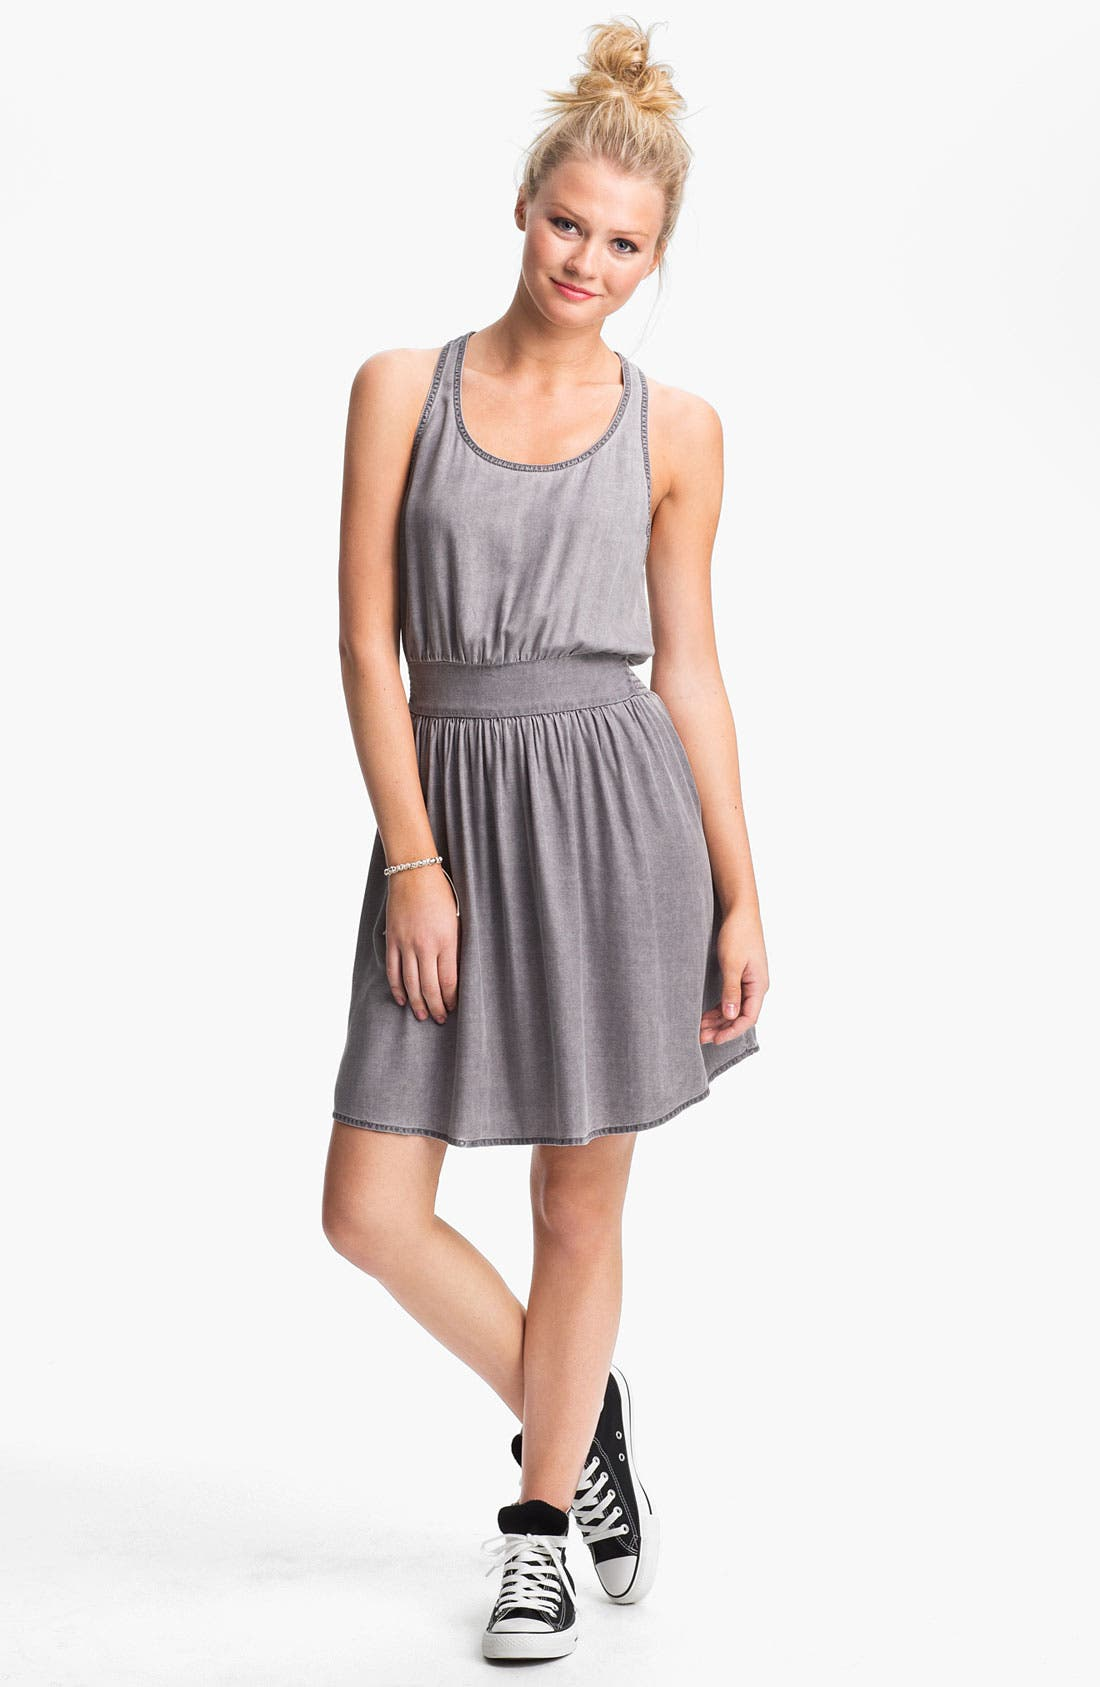 Alternate Image 1 Selected - BP. Chambray Racerback Dress (Juniors)